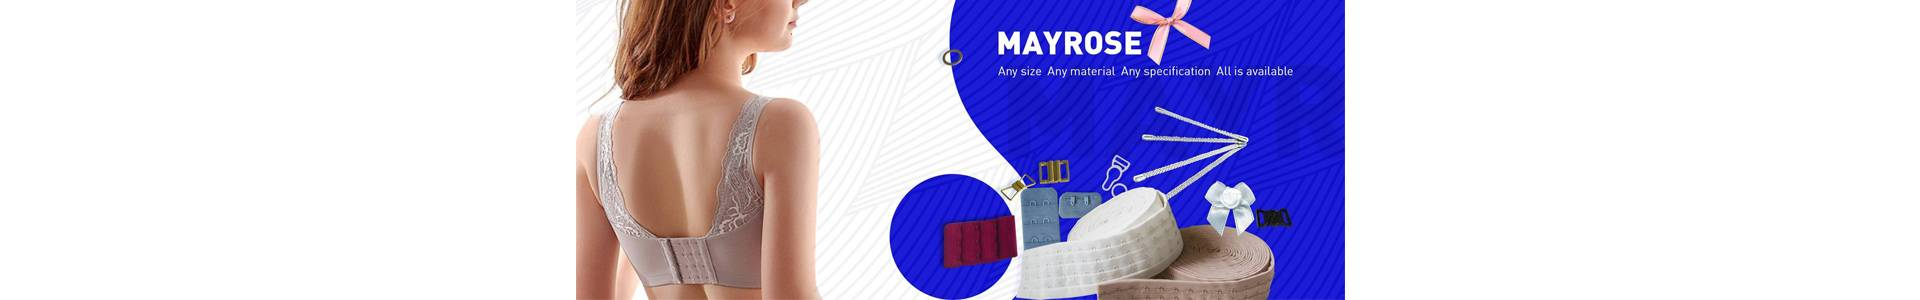 product-Mayrose-nylon coated-img